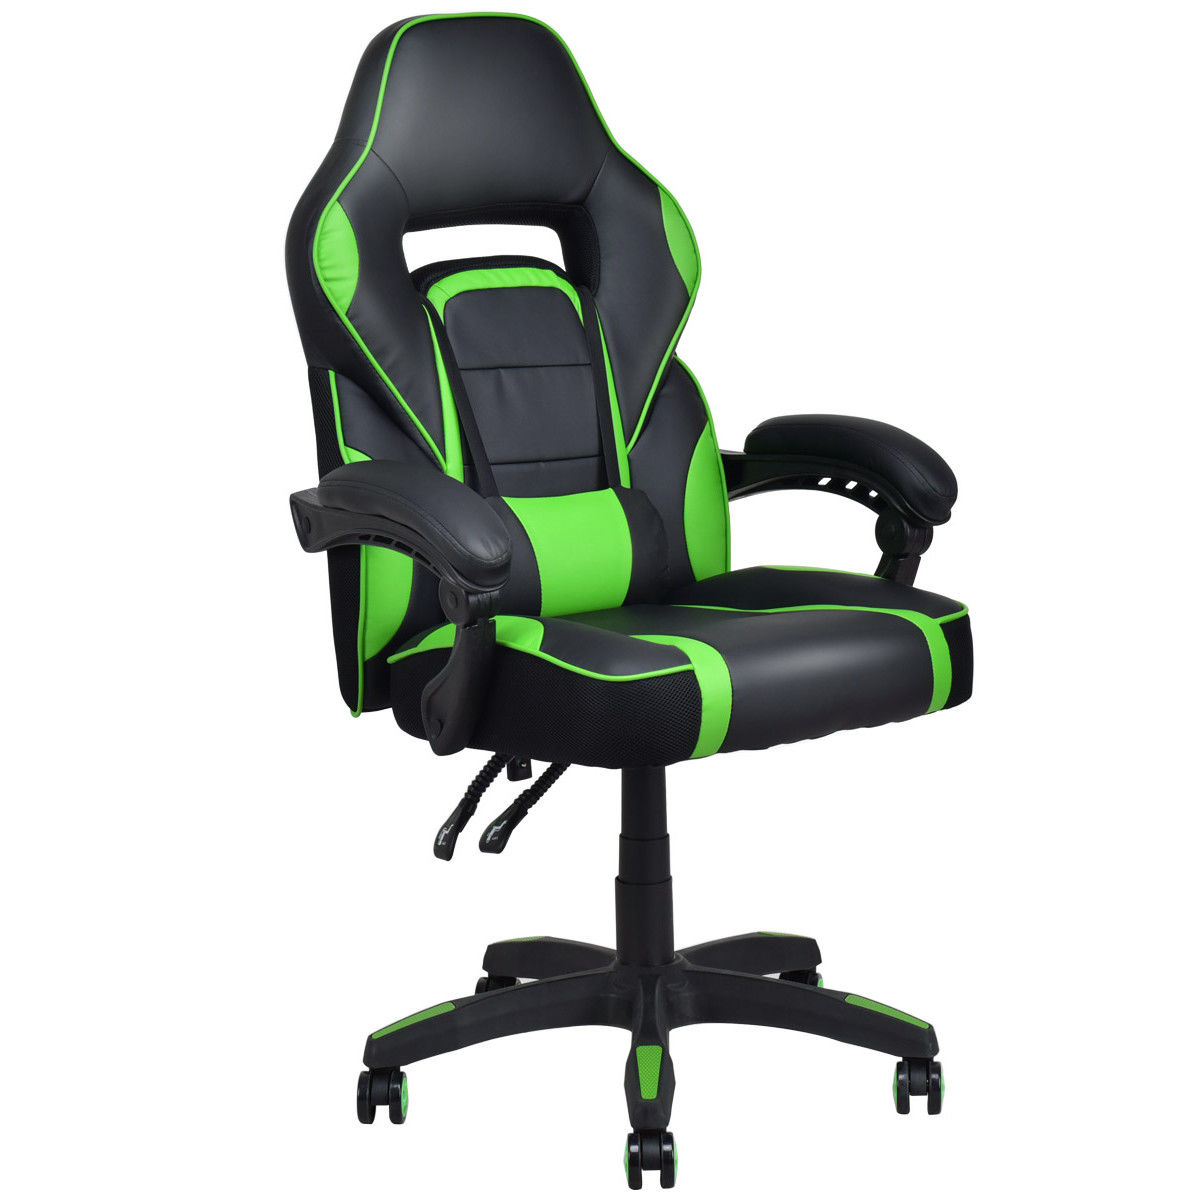 Giantex Executive Racing Style PU Leather Computer Gaming Chair High Back Recliner Modern Swivel Home Office Chair HW56246GN giantex pu leather high back racing style bucket seat gaming chair with head pillow modern office desk computer chairs hw52433